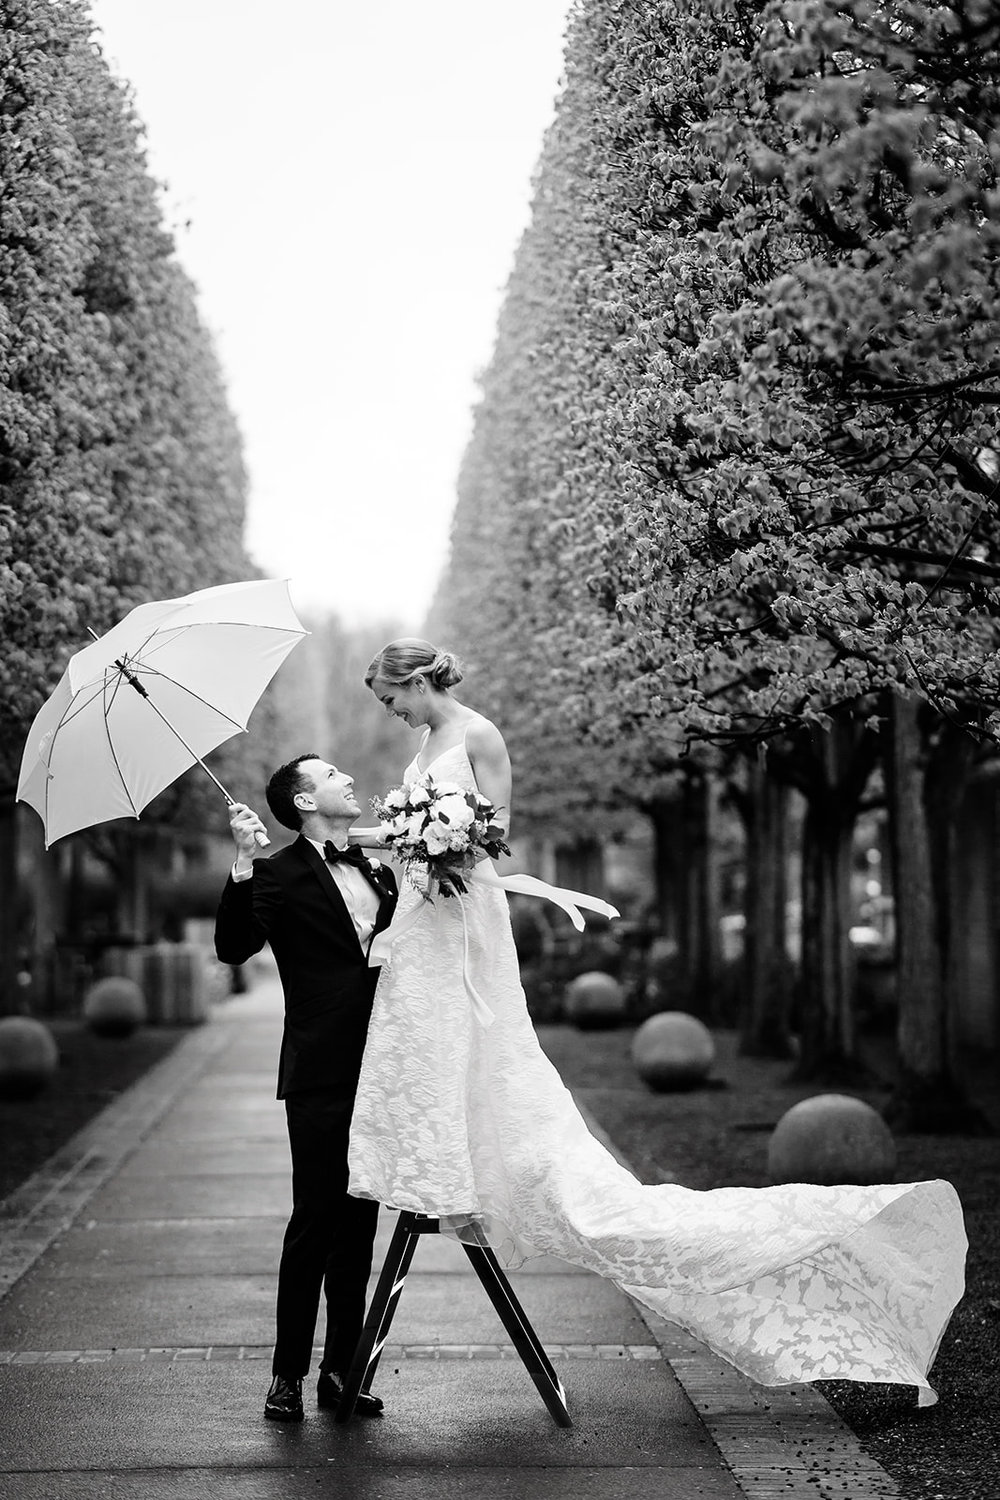 Rodney Smith inspired editorial wedding photography in Chicago